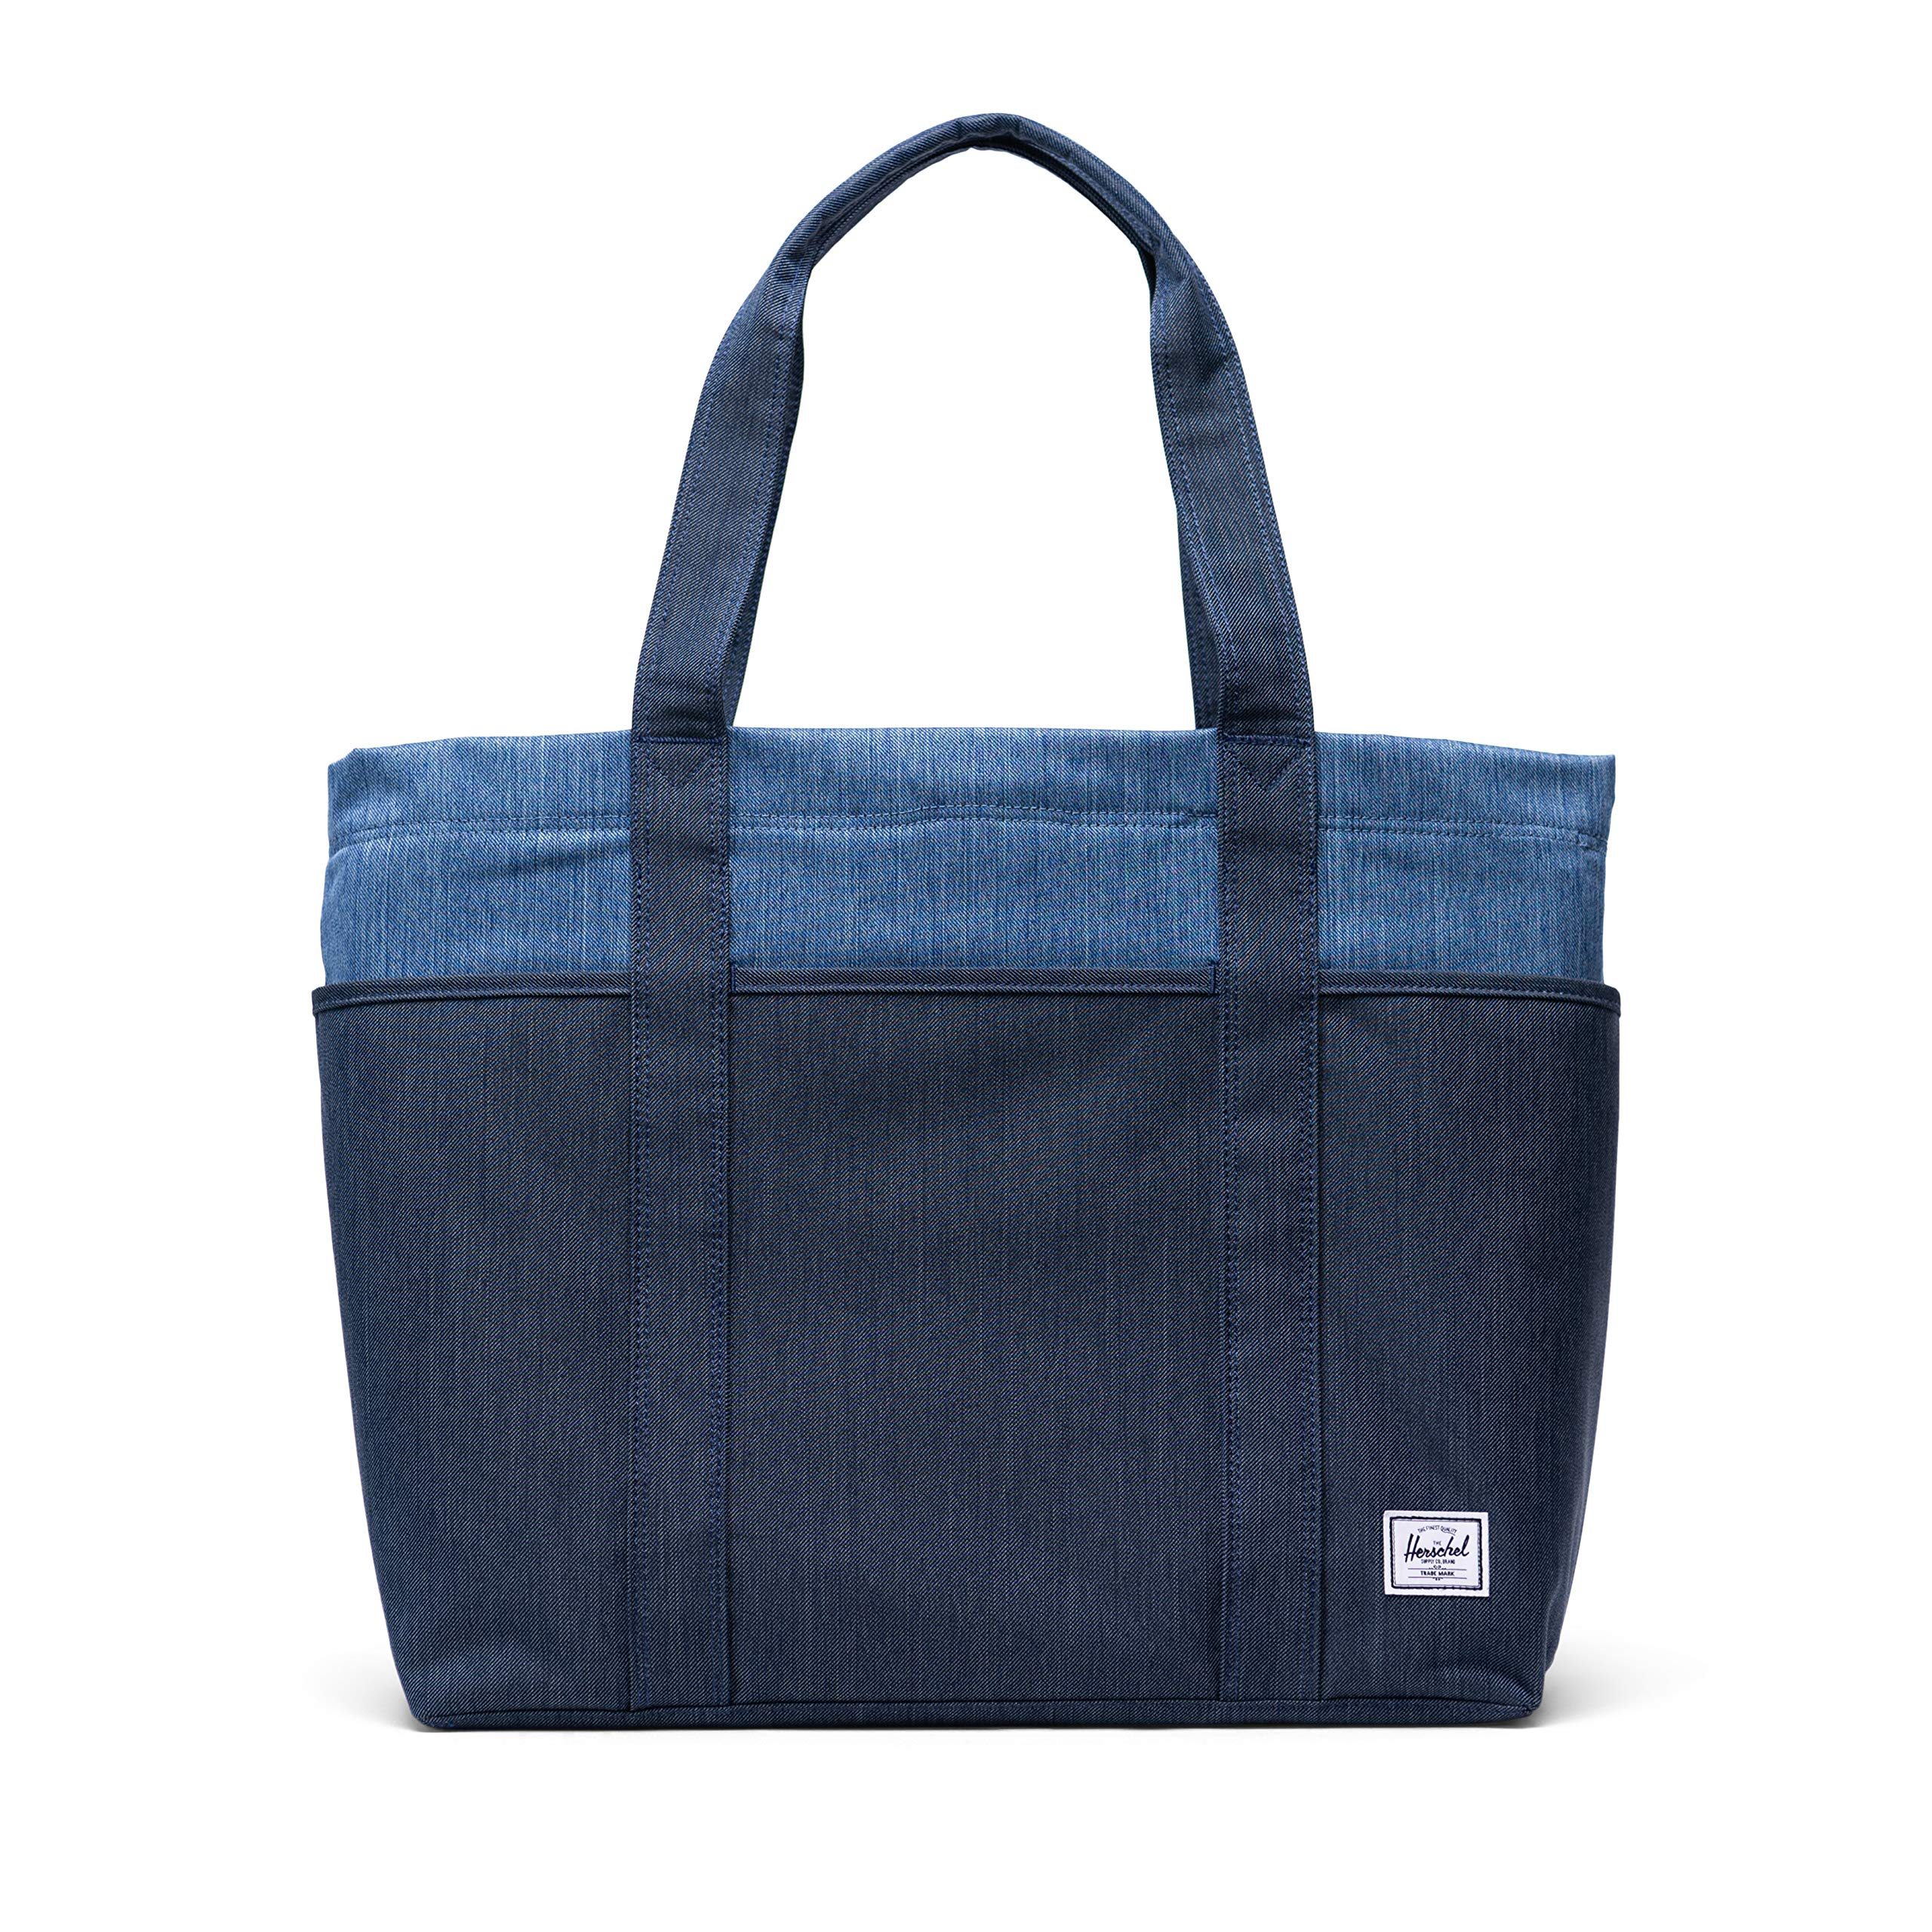 Herschel Terrace Travel Tote, Indigo Faded Denim, One Size